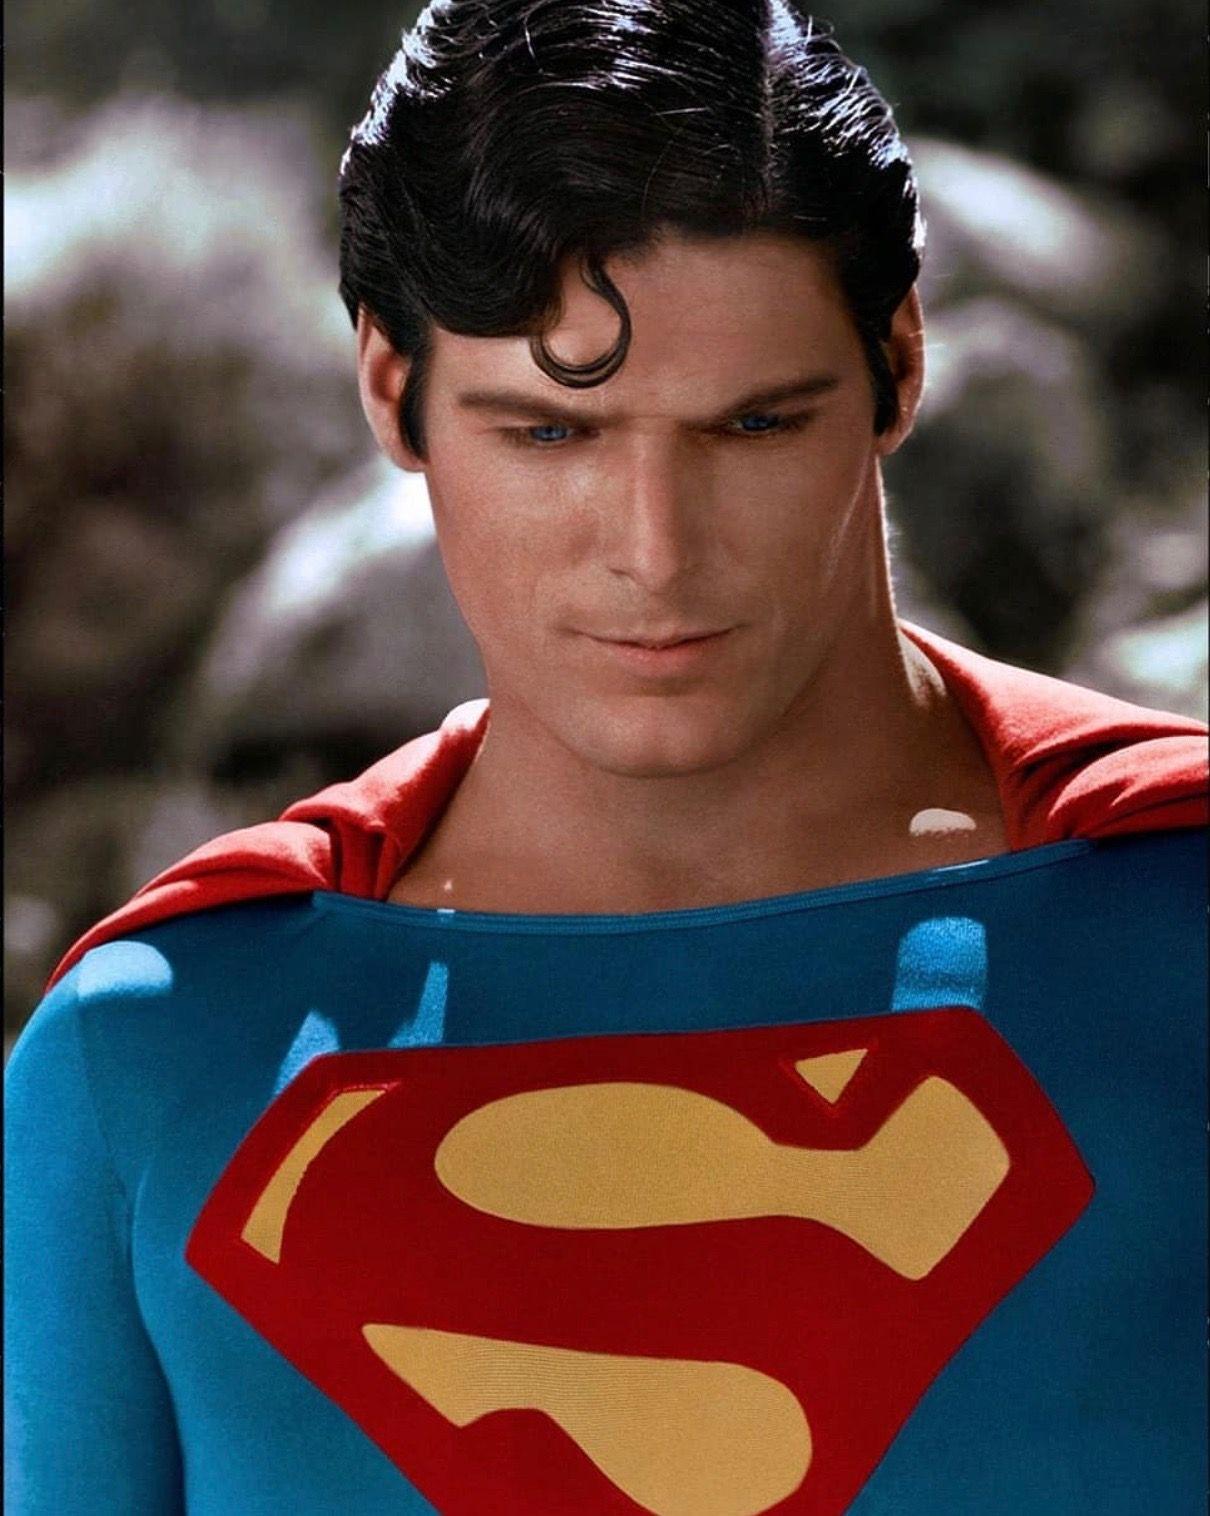 Pin By Adam Kumler On Retro In 2020 Christopher Reeve Superman Superman Pictures Superman